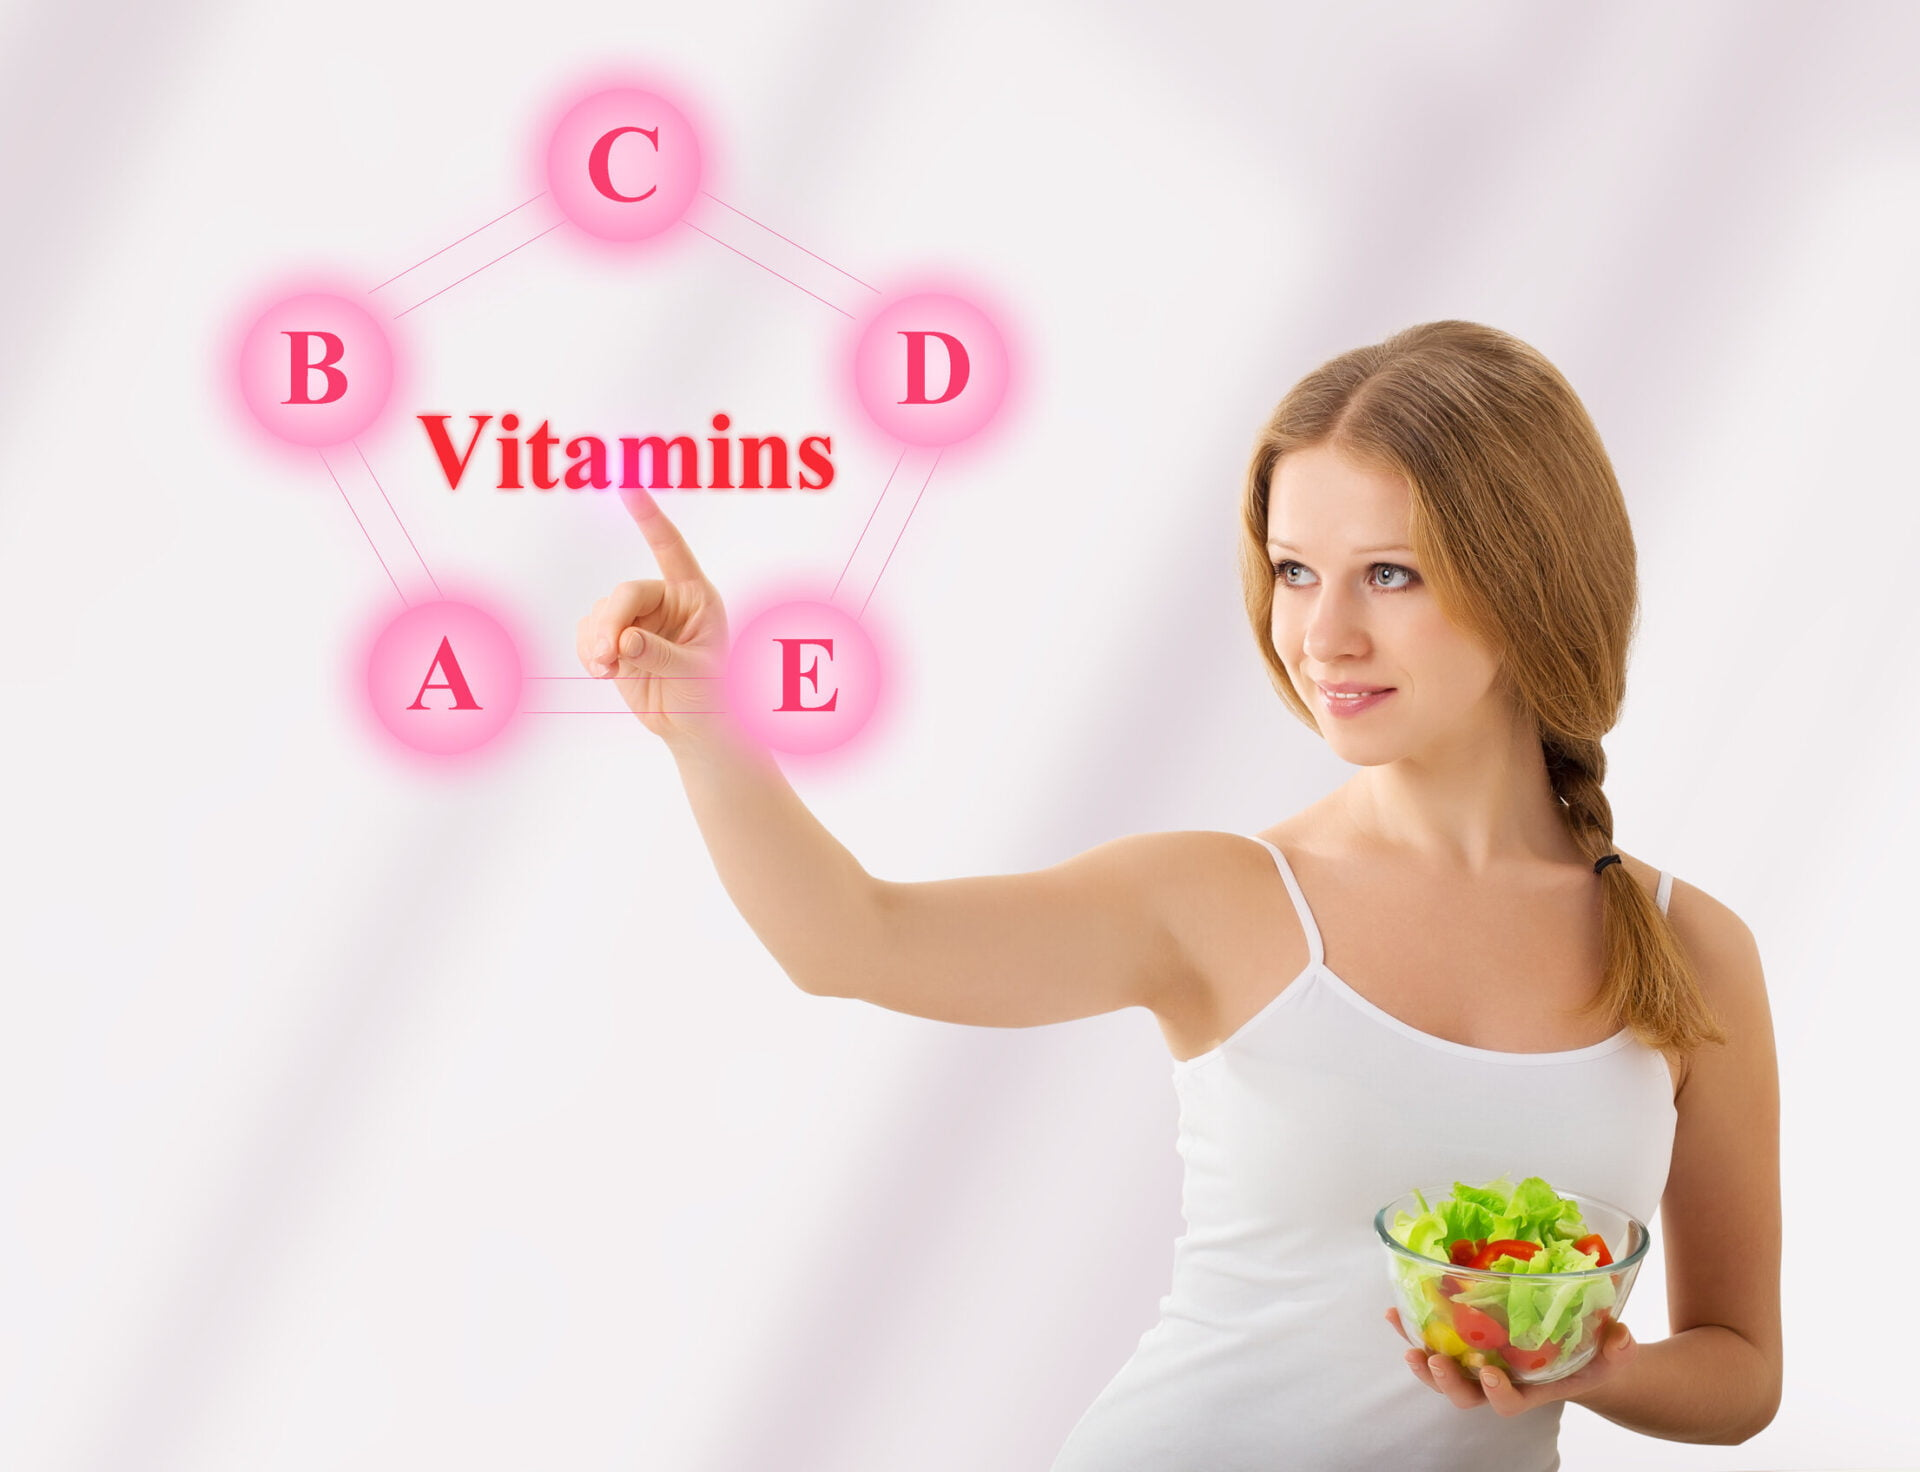 Avitaminosis – Take Care of a Balanced Diet